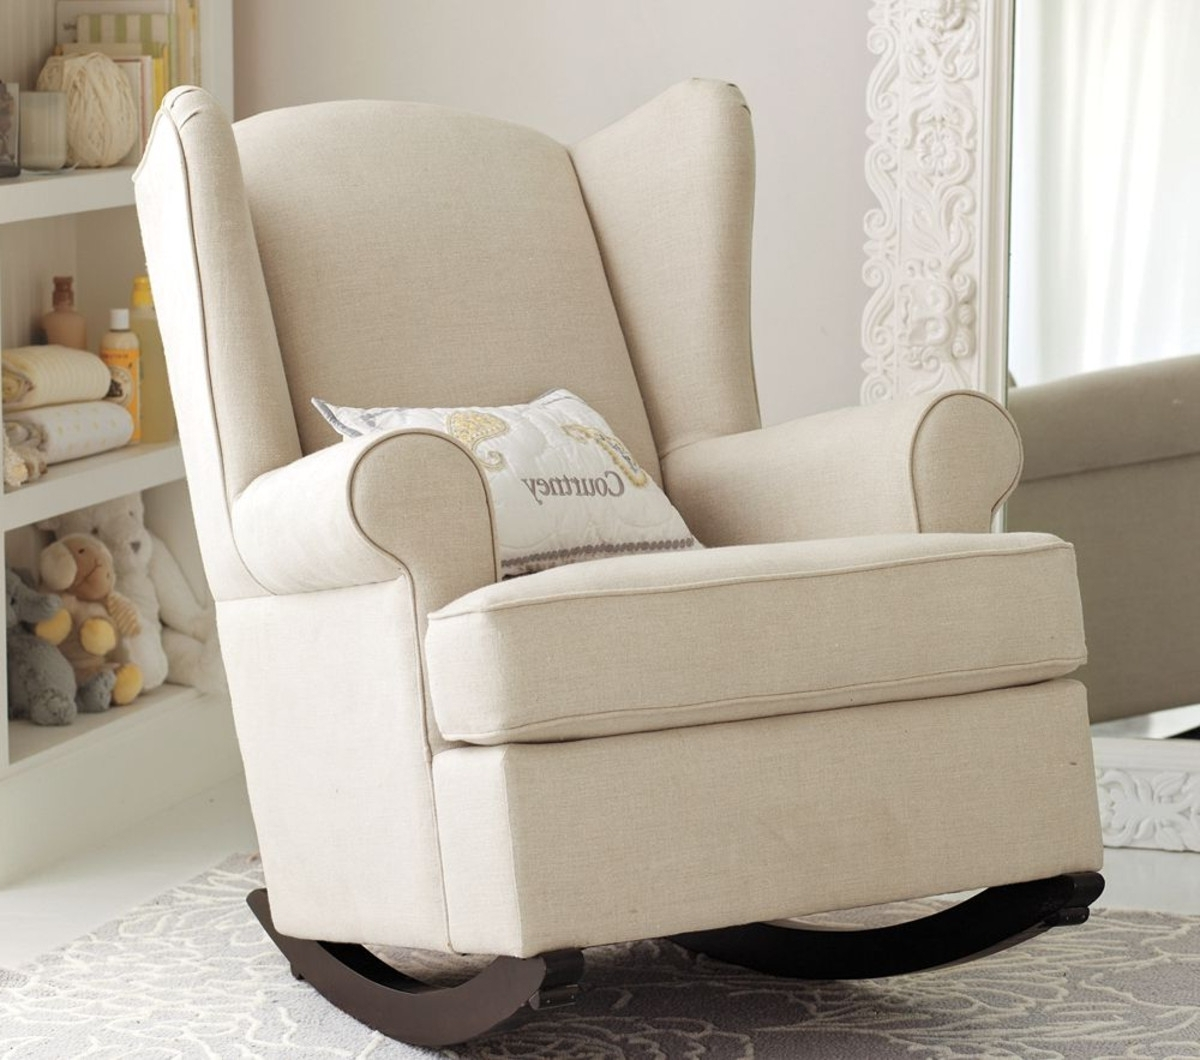 Fashionable Rocking Chairs Adelaide Intended For Rocking Chair For Nursery : Milton Milano Designs – Rocking Chair (View 9 of 15)